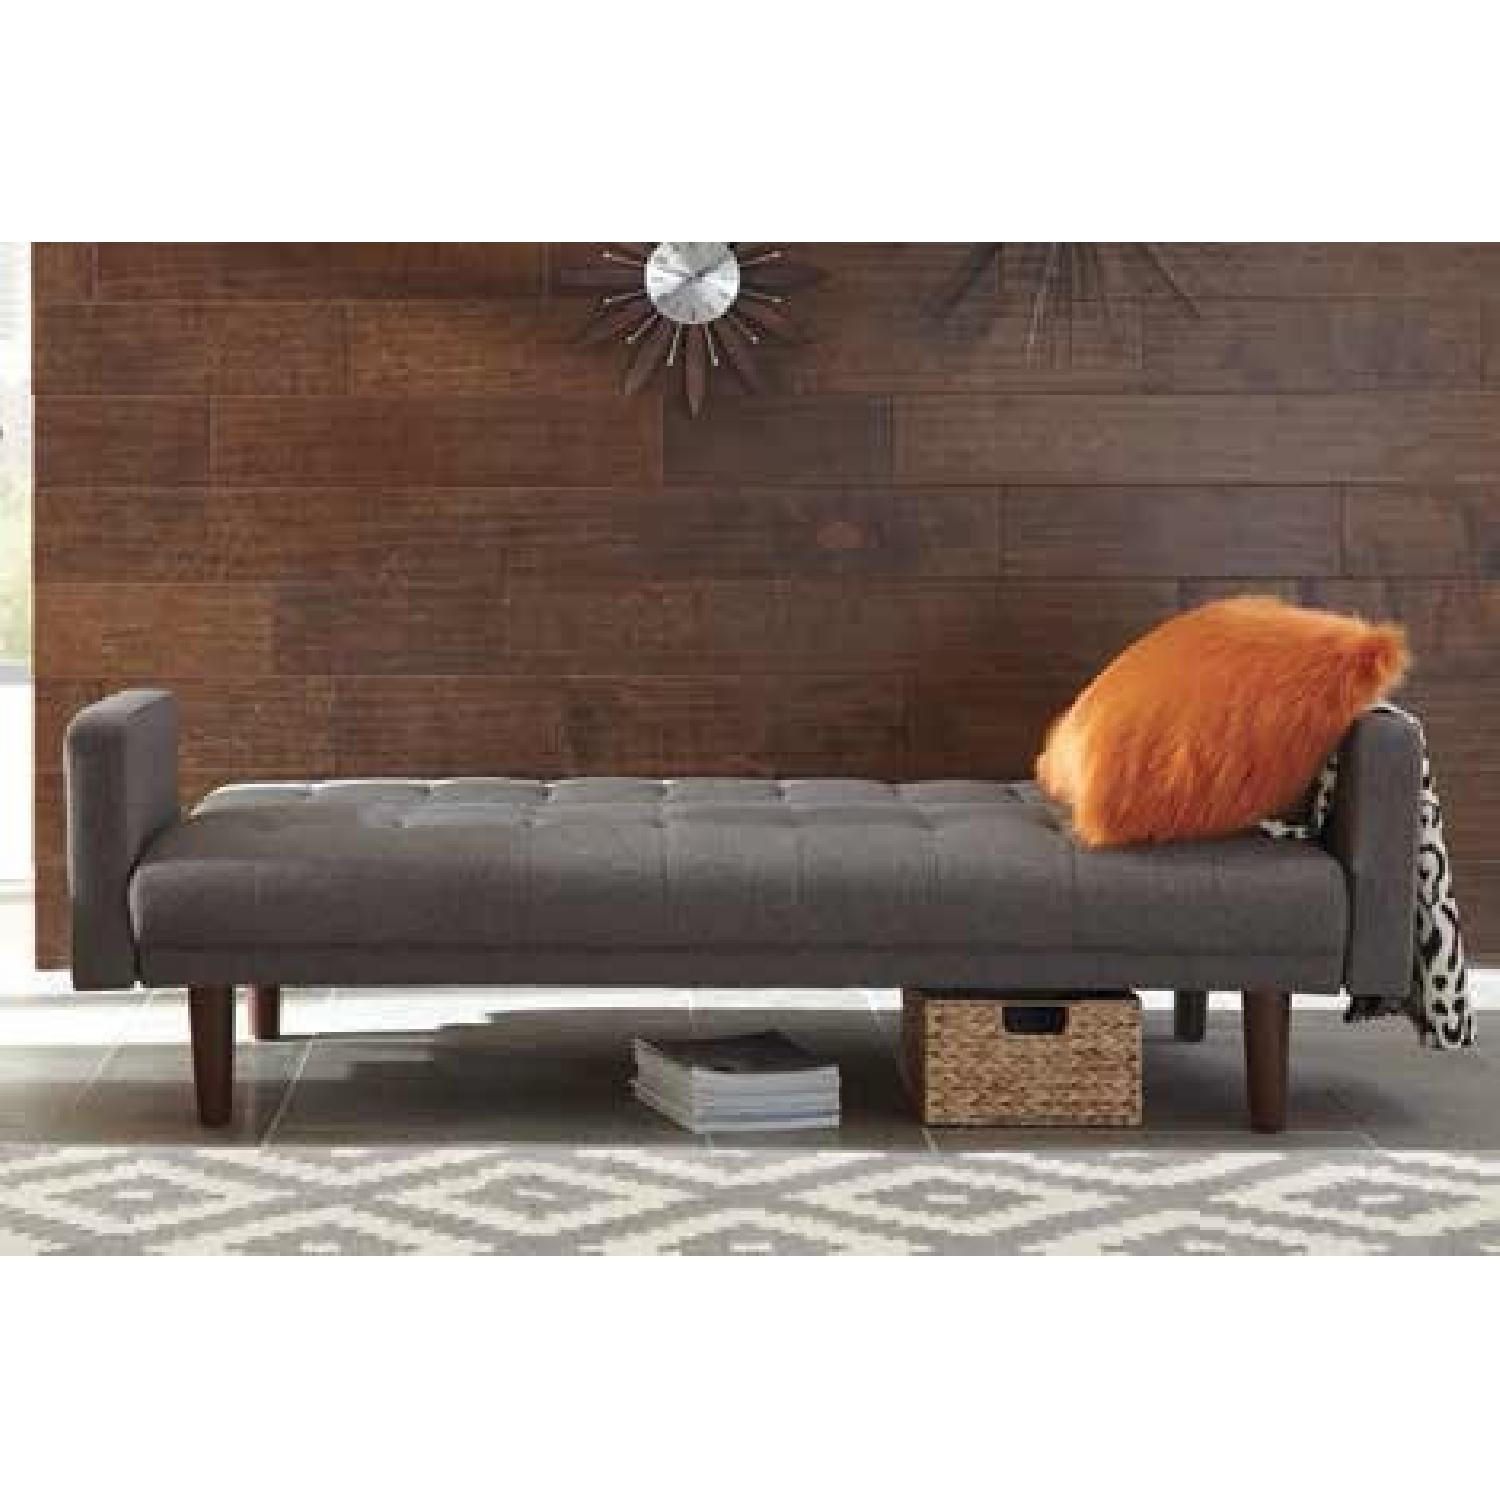 Modern Compact Sofabed in Grey Fabric